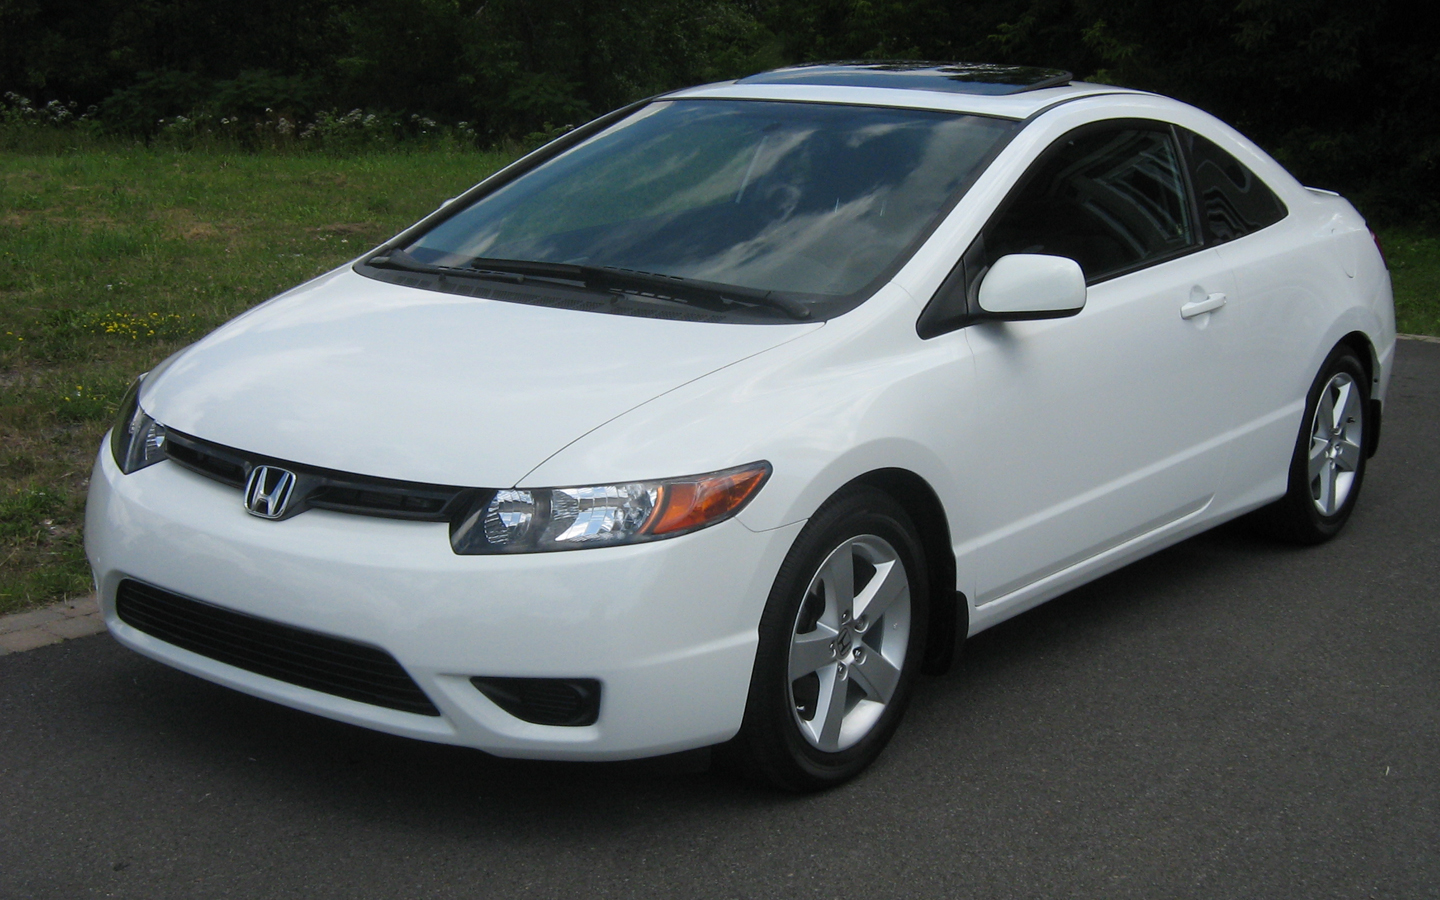 Picture of 2008 Honda Civic Coupe LX